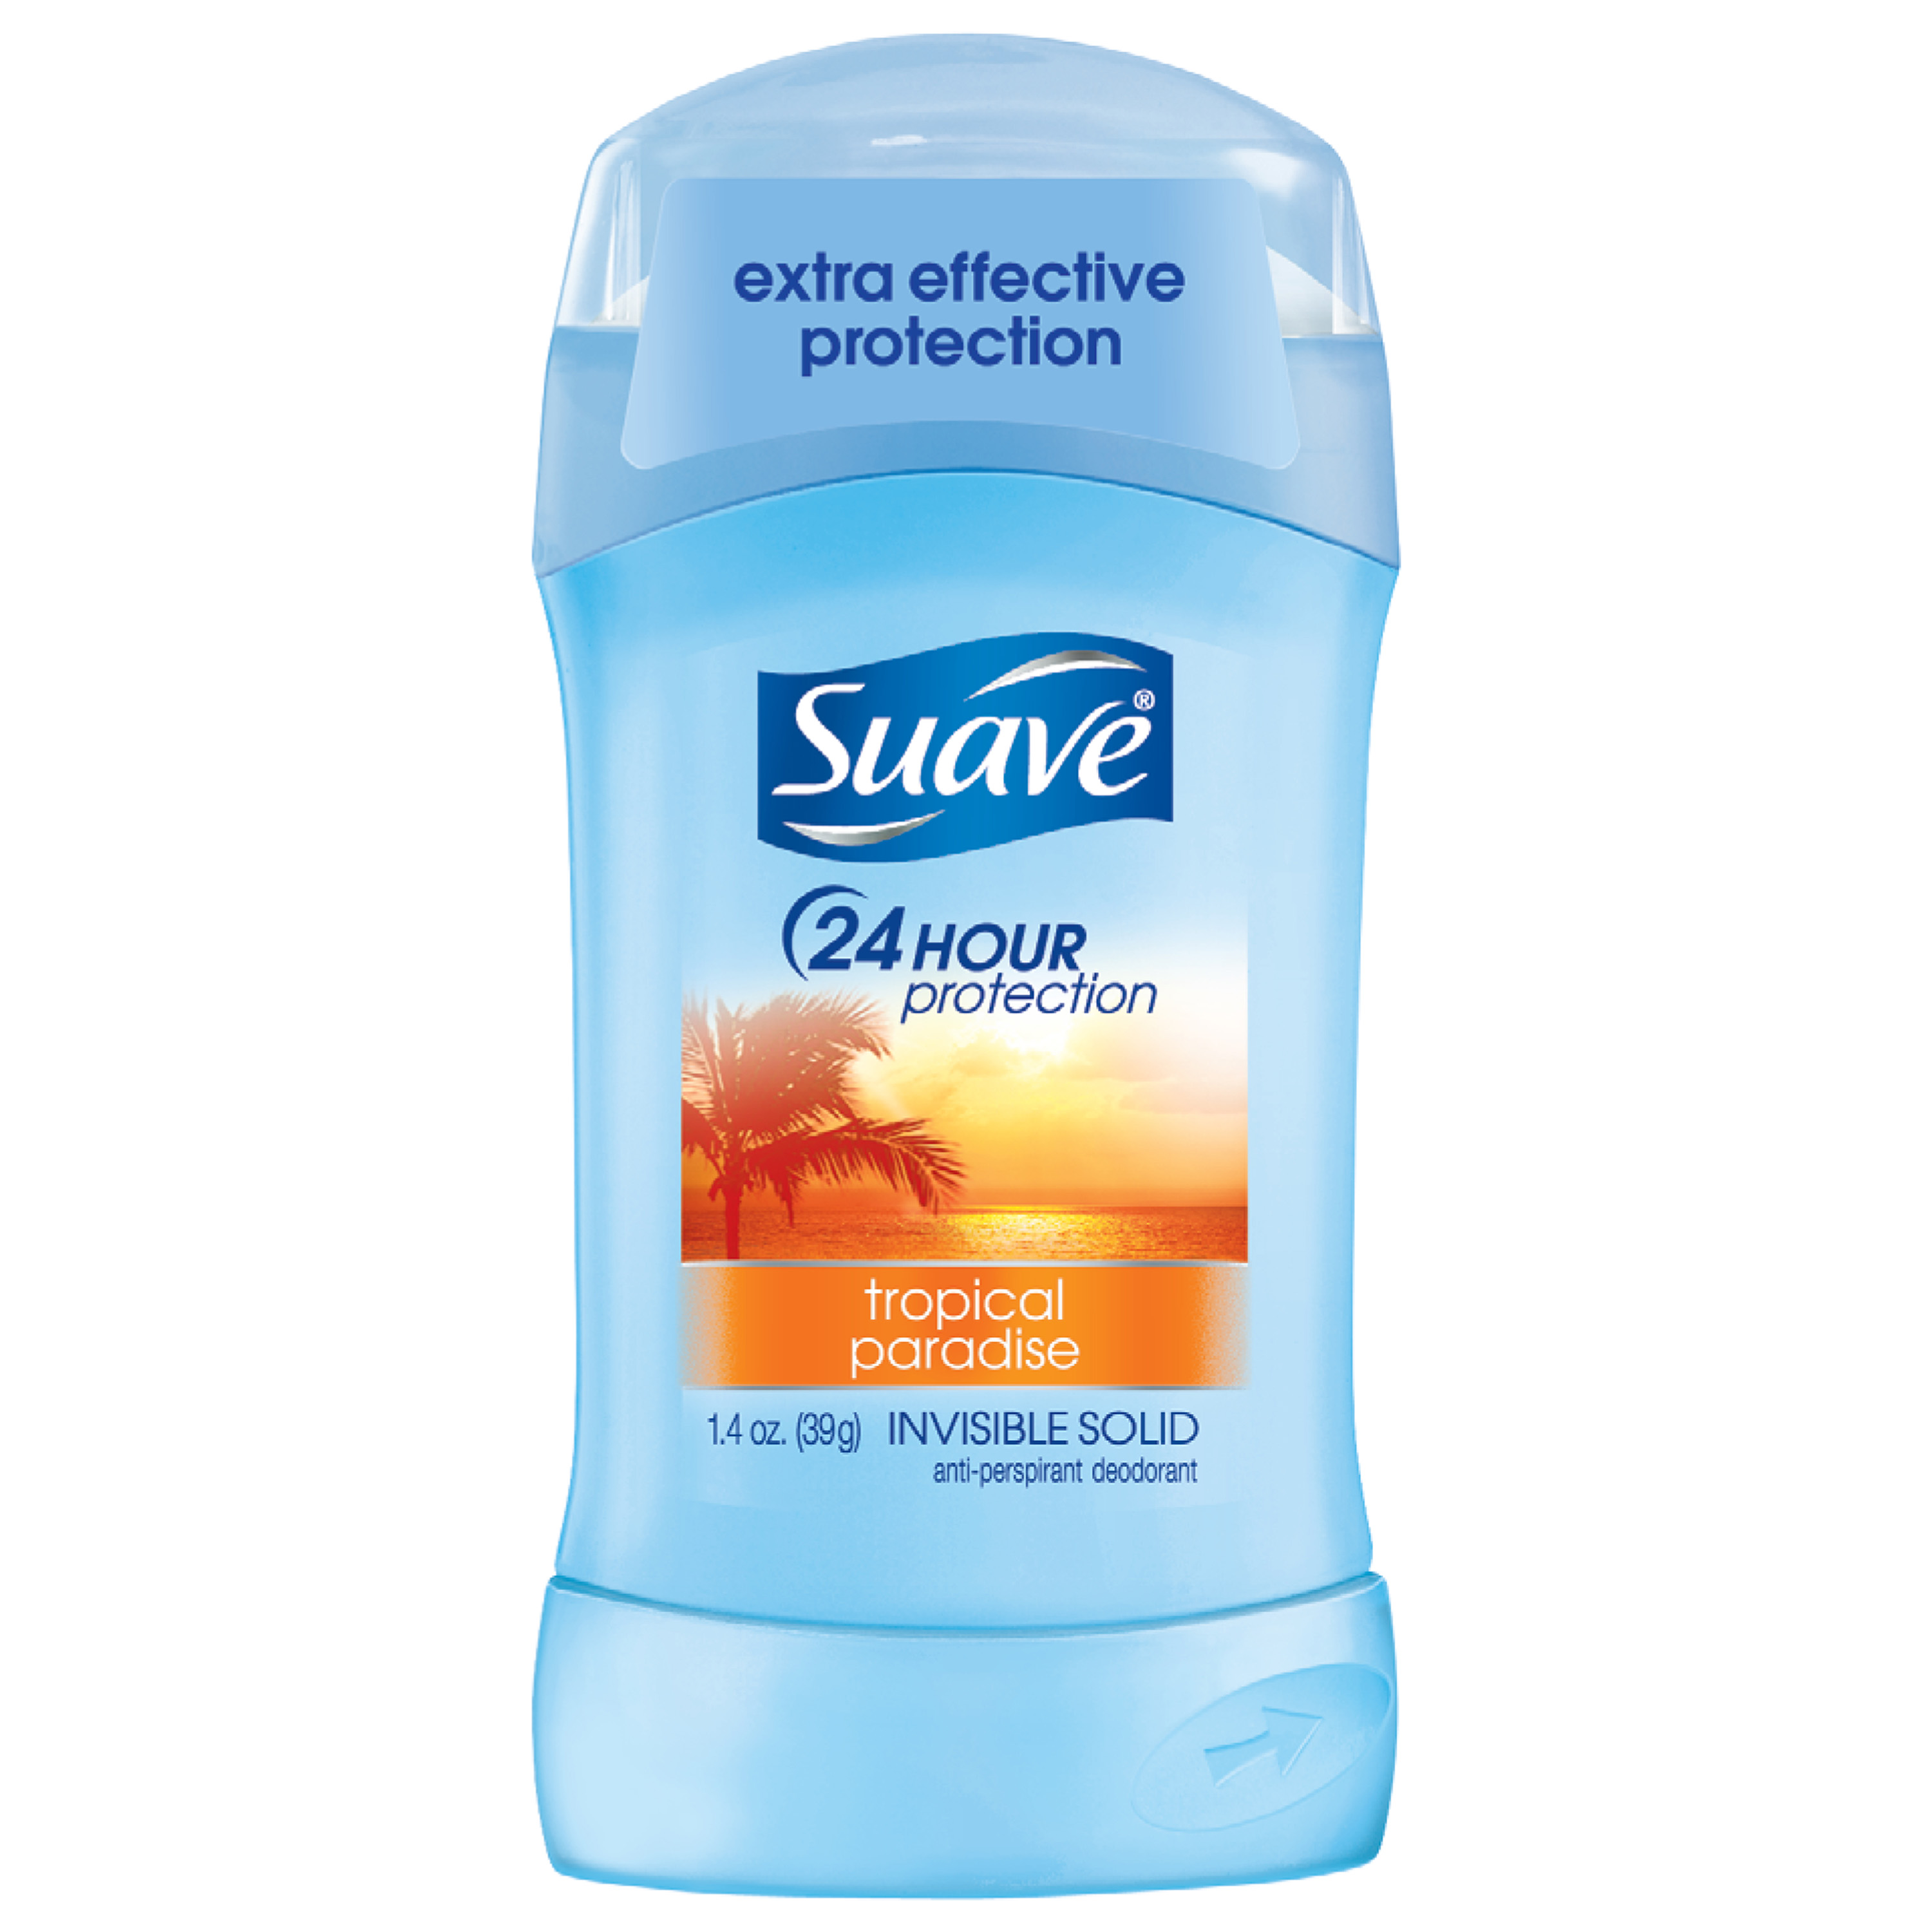 Suave Tropical Paradise Antiperspirant Deodorant, 1.4 oz